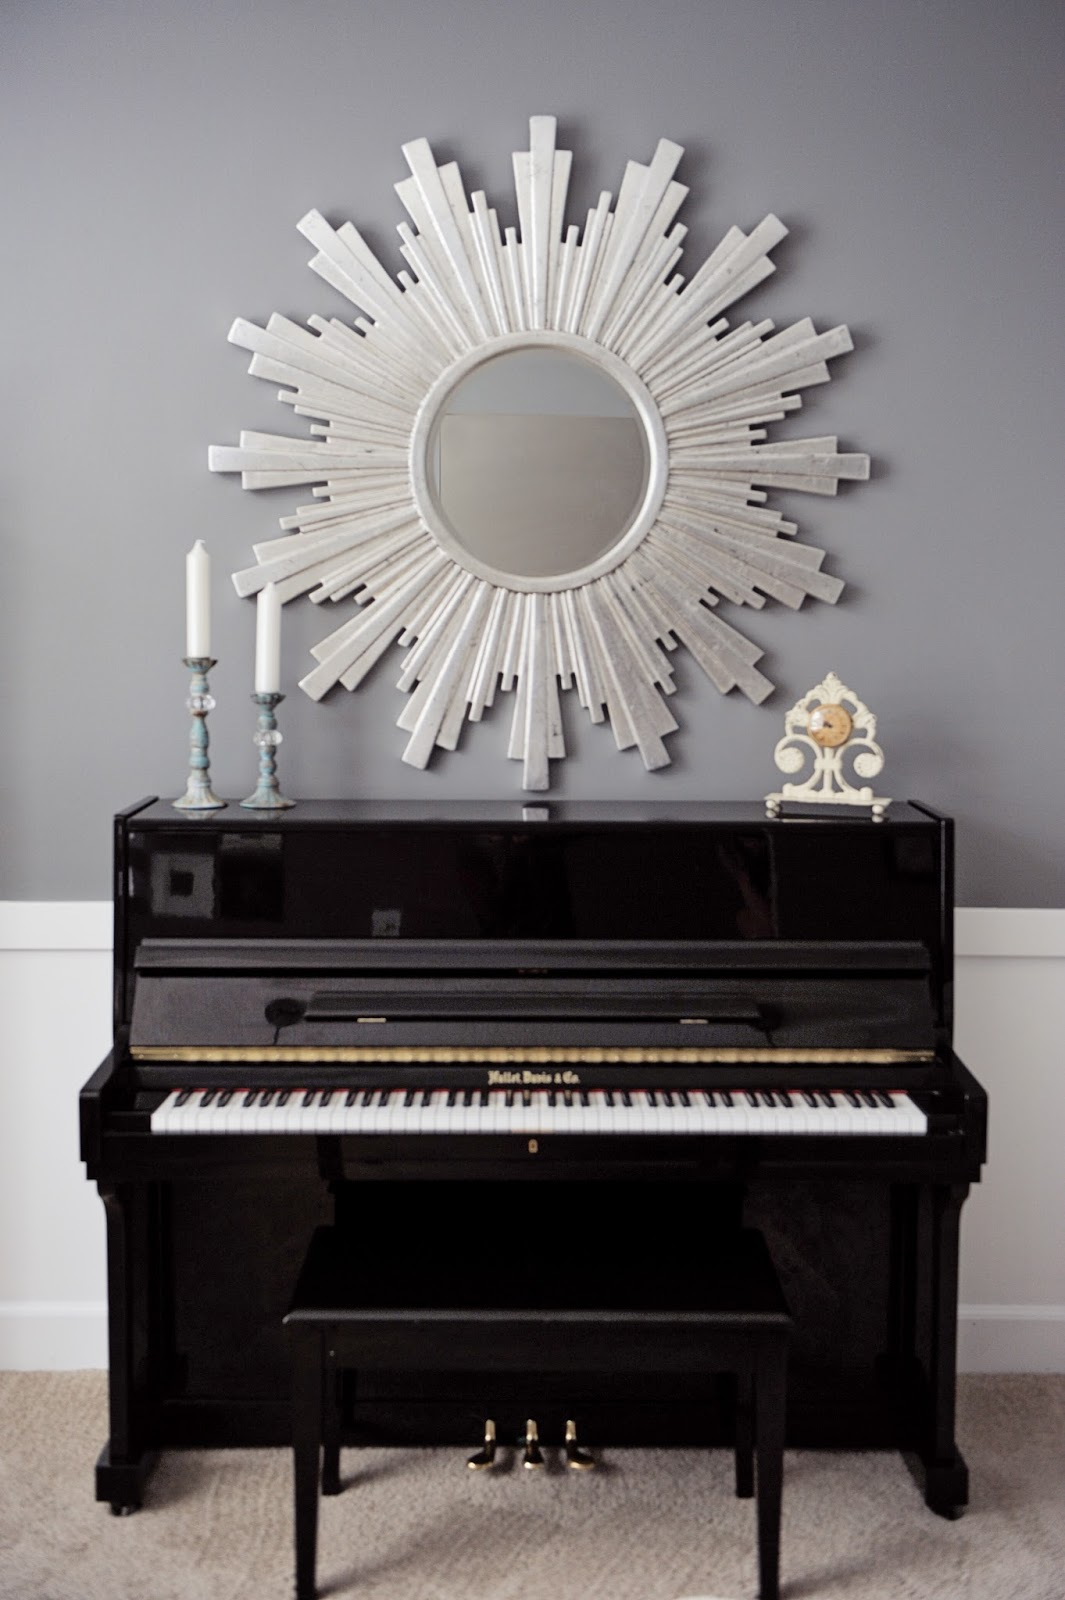 upright piano, ballard design, gardner village, down to earth, Gray, white, black, silver, gold, zgallerie, homegoods, ikea, tjmaxx, marshalls, world market, ross, ksl, overstock, tuesday morning, sherwin williams, cityscape, turquoise, floral arrangement, marble, tan, curtains, sheer curtains, contemporary, interiors, interior design, staging, salt lake city, utah, sandy, design, blog, blogger, studio 7, studio 7 interior design